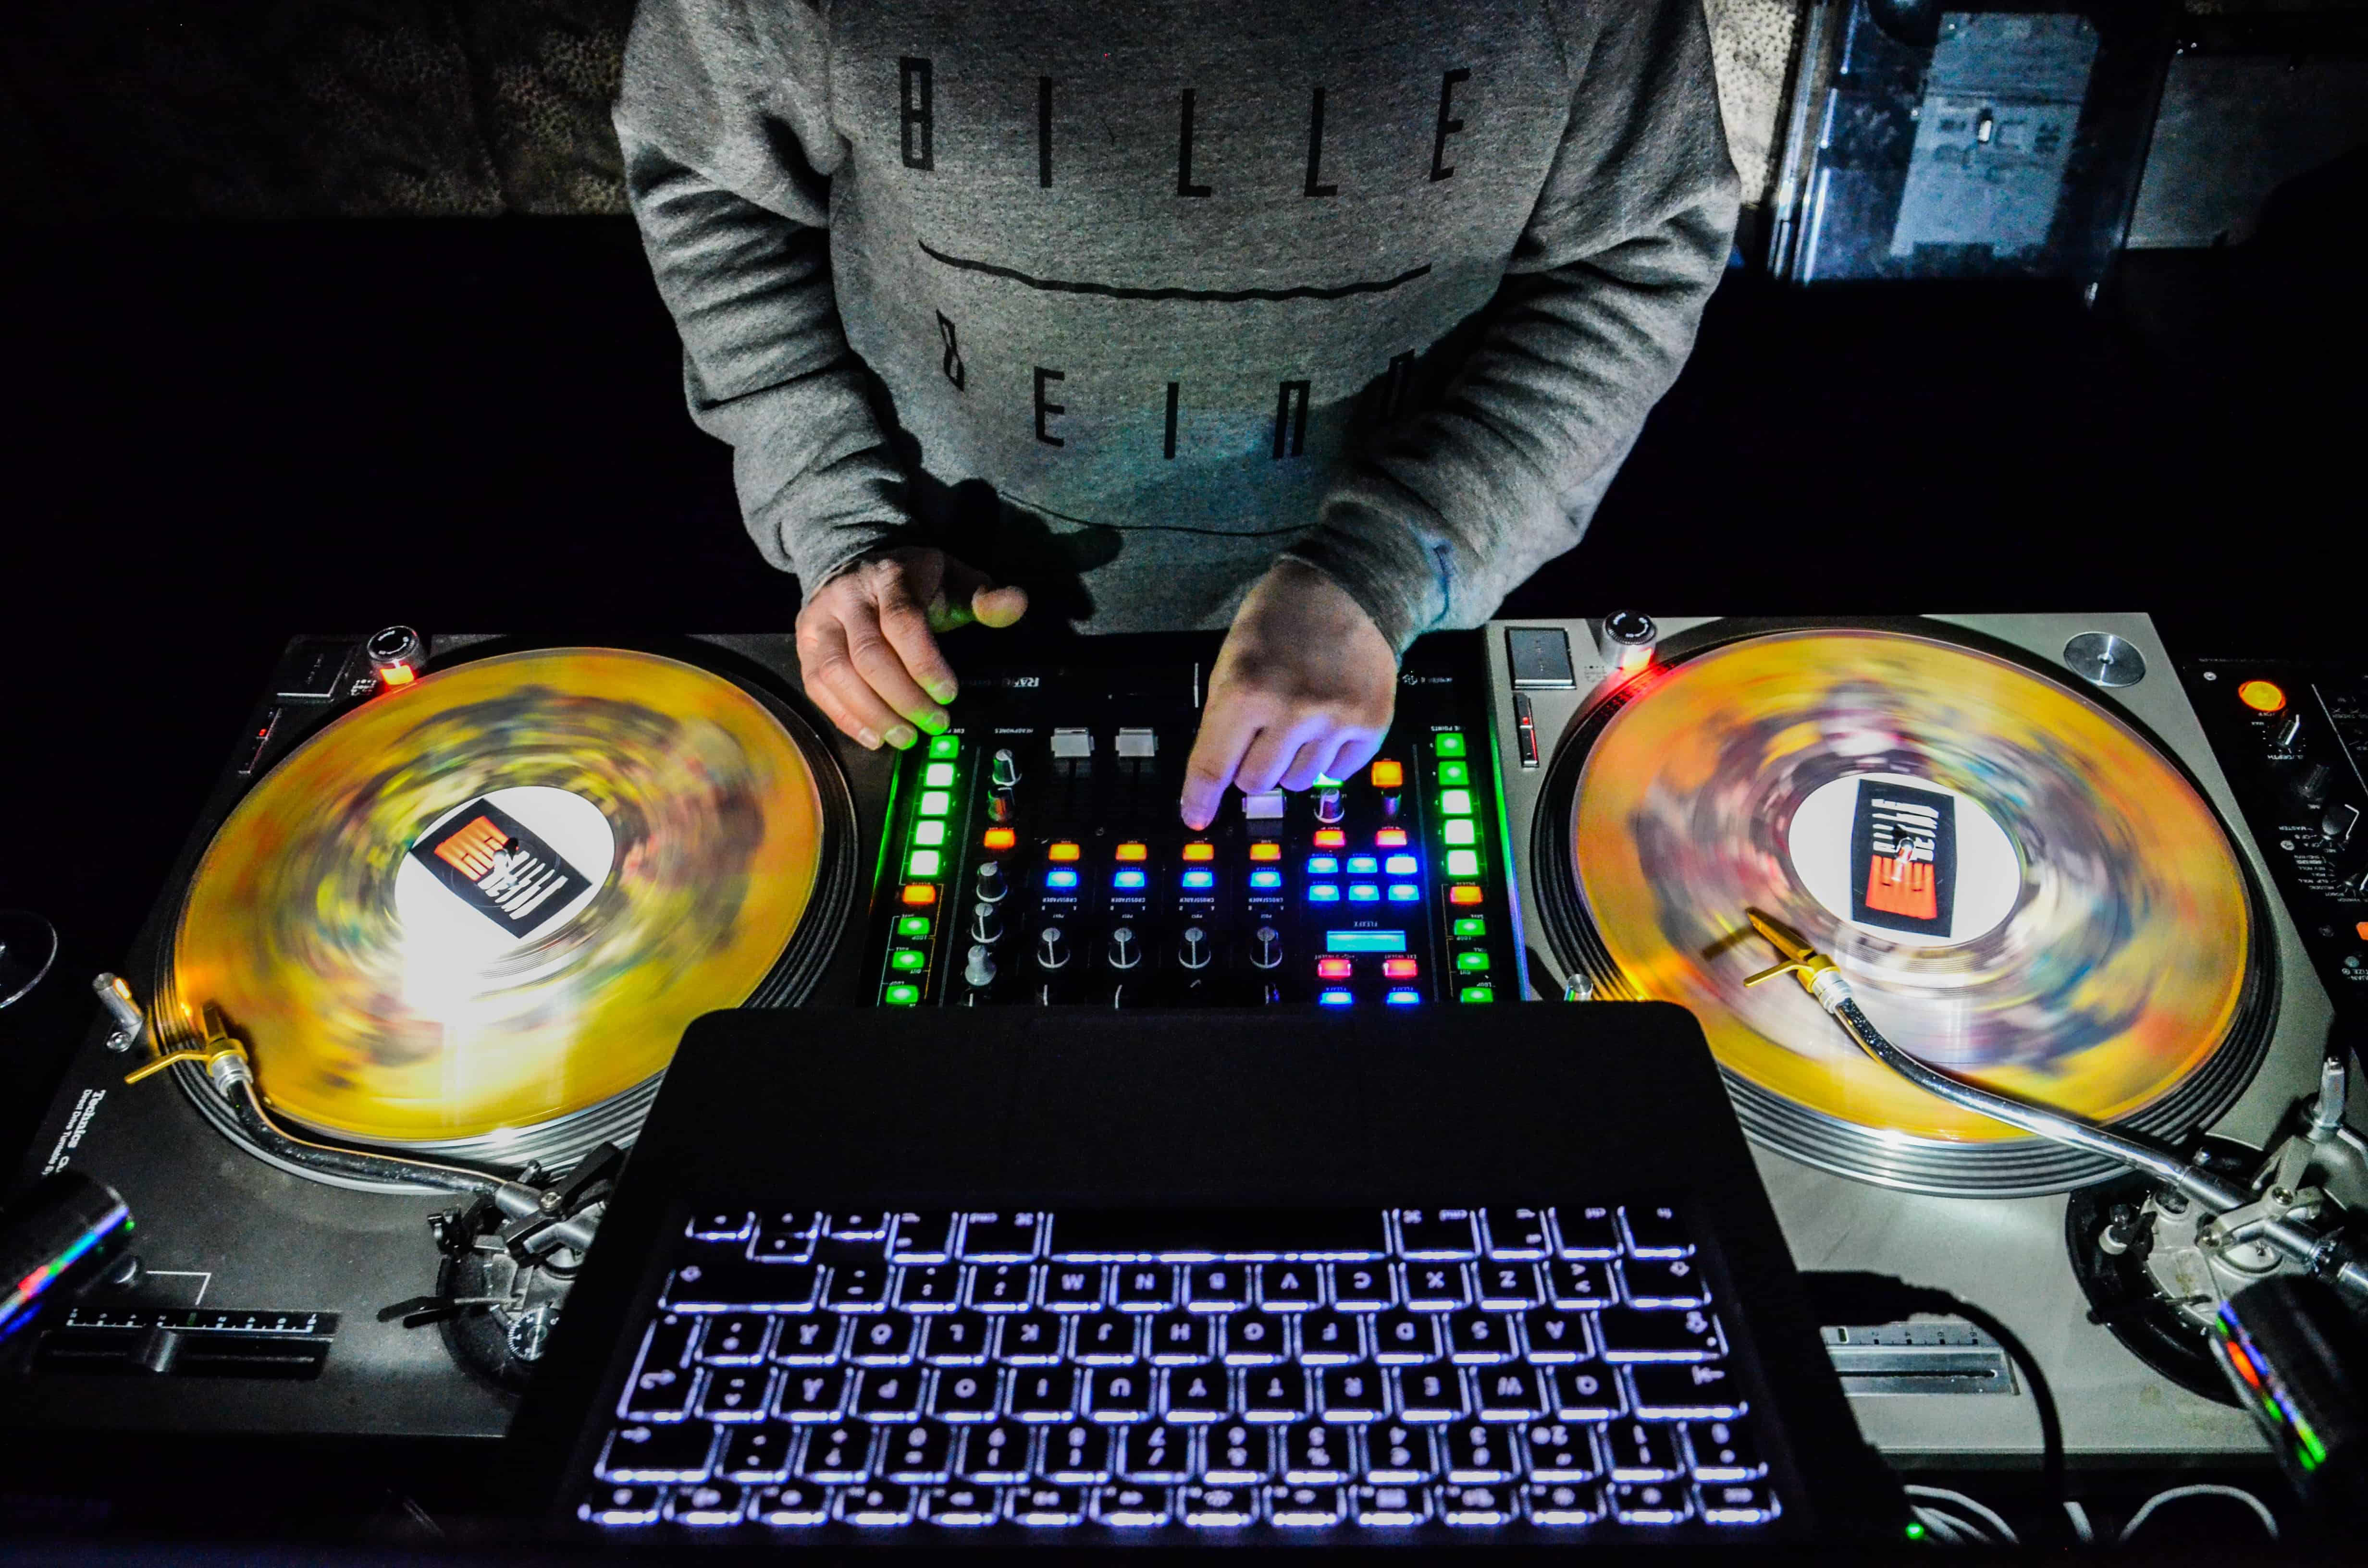 7 Best DJ Controllers For Beginners in 2019 Reviewed in 2019